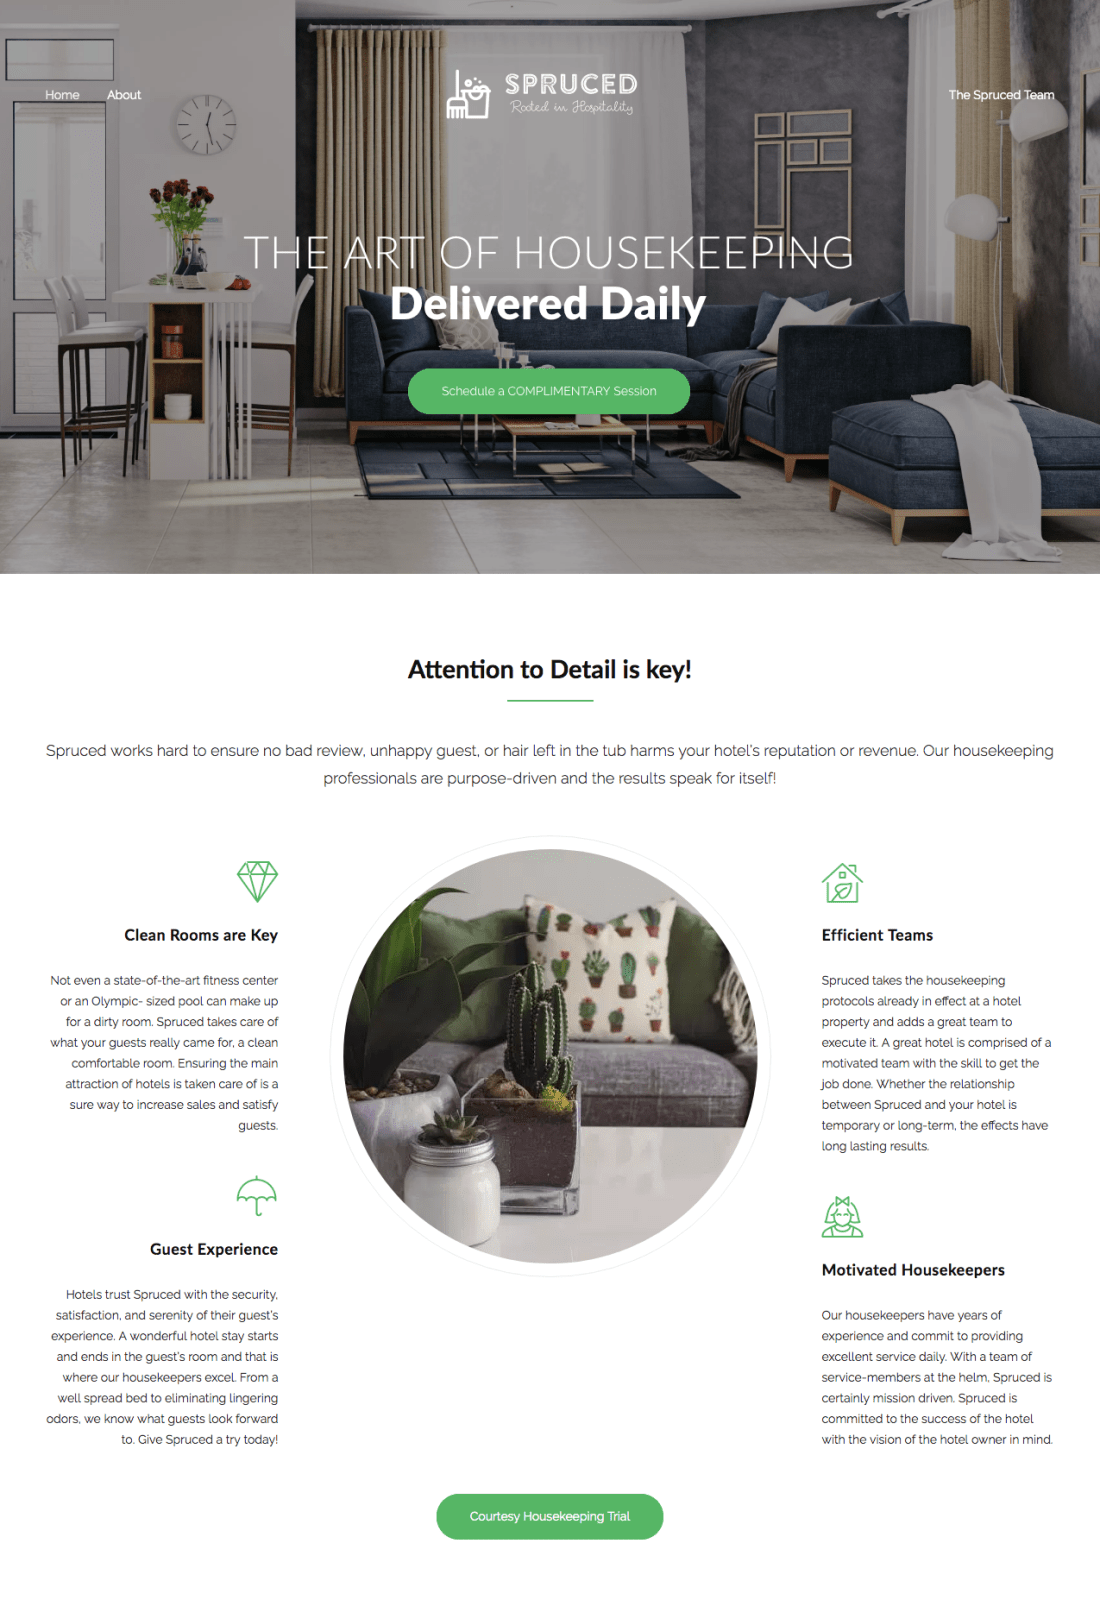 spruced - maid service website - wordpress website design services